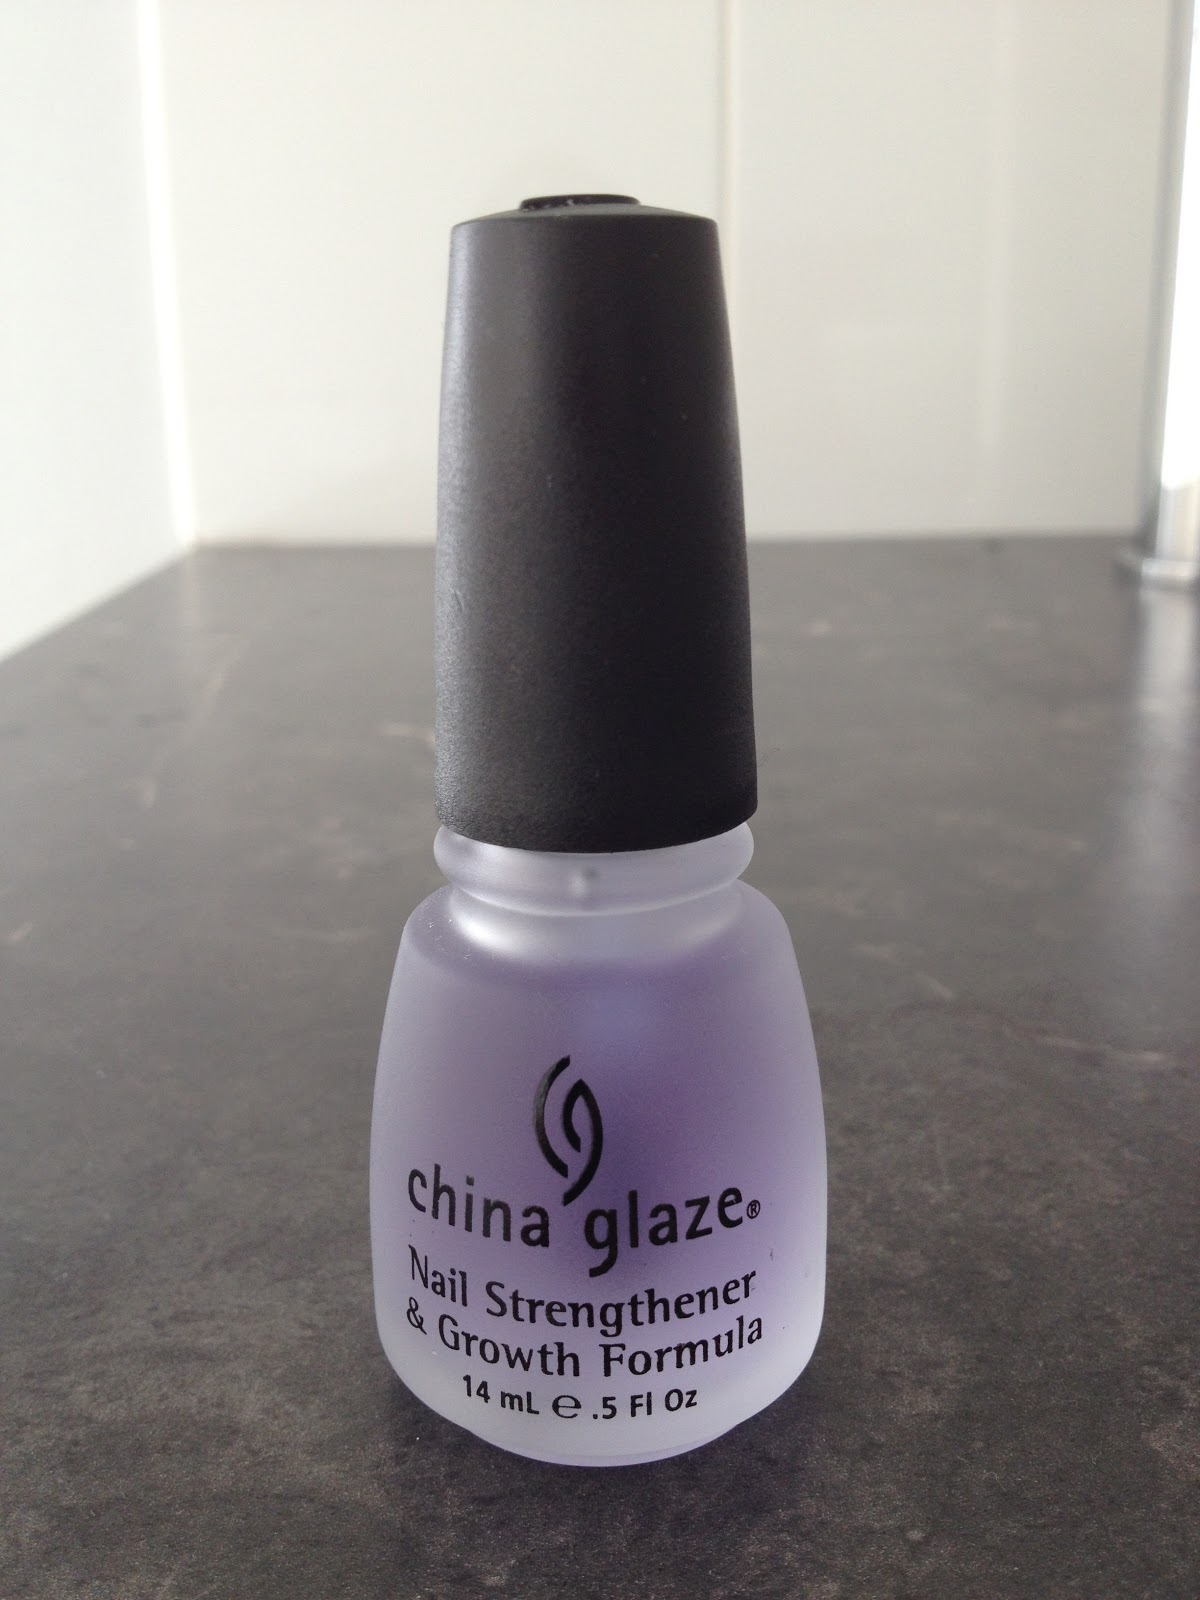 rêveriebelle beauty blog: Review: China Glaze Nail Strengthener ...